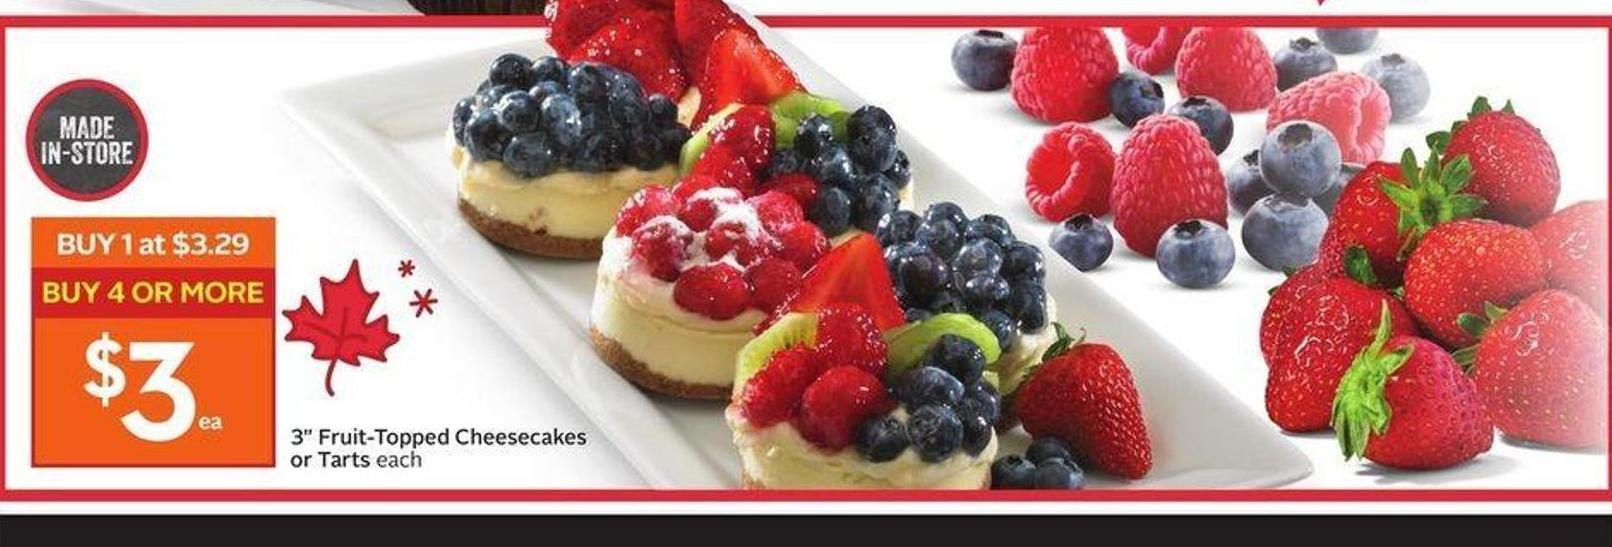 3in Fruit-topped Cheesecakes or Tarts